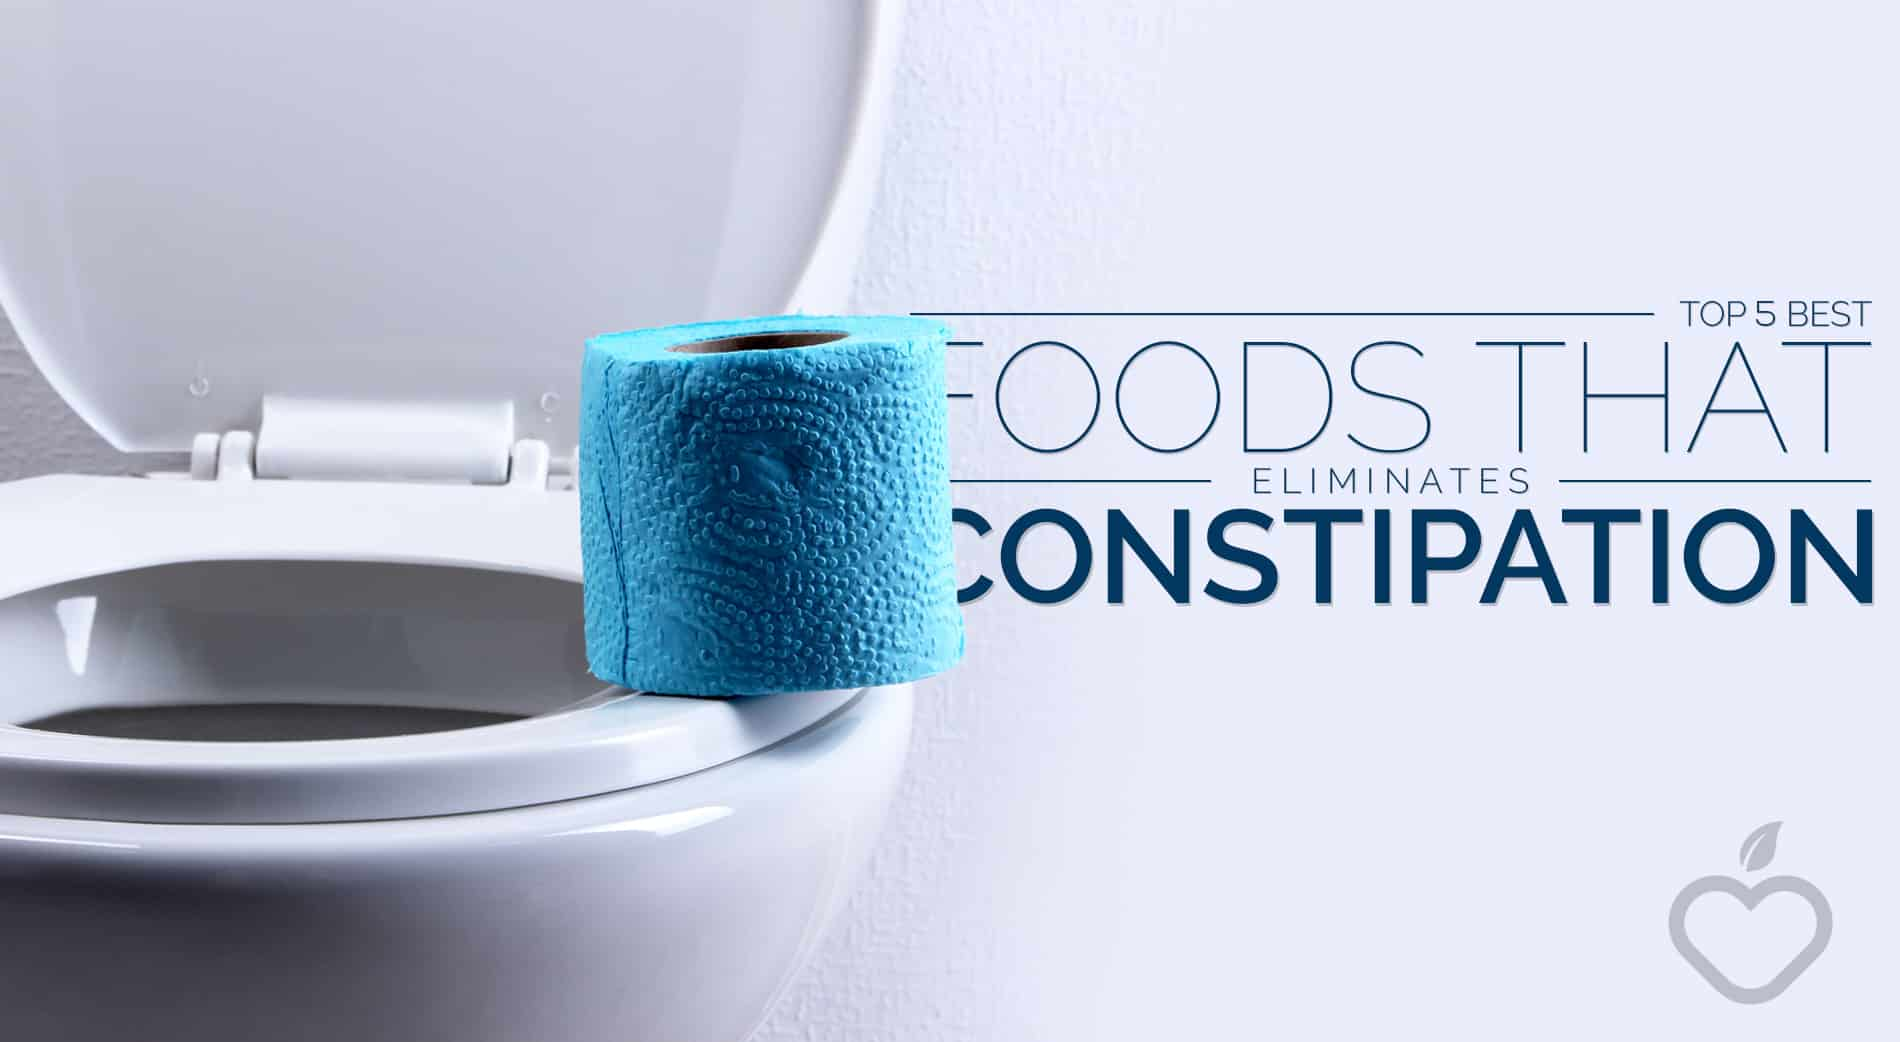 Constipation Image Design 1 1 - The 5 Best Foods that Eliminate Constipation